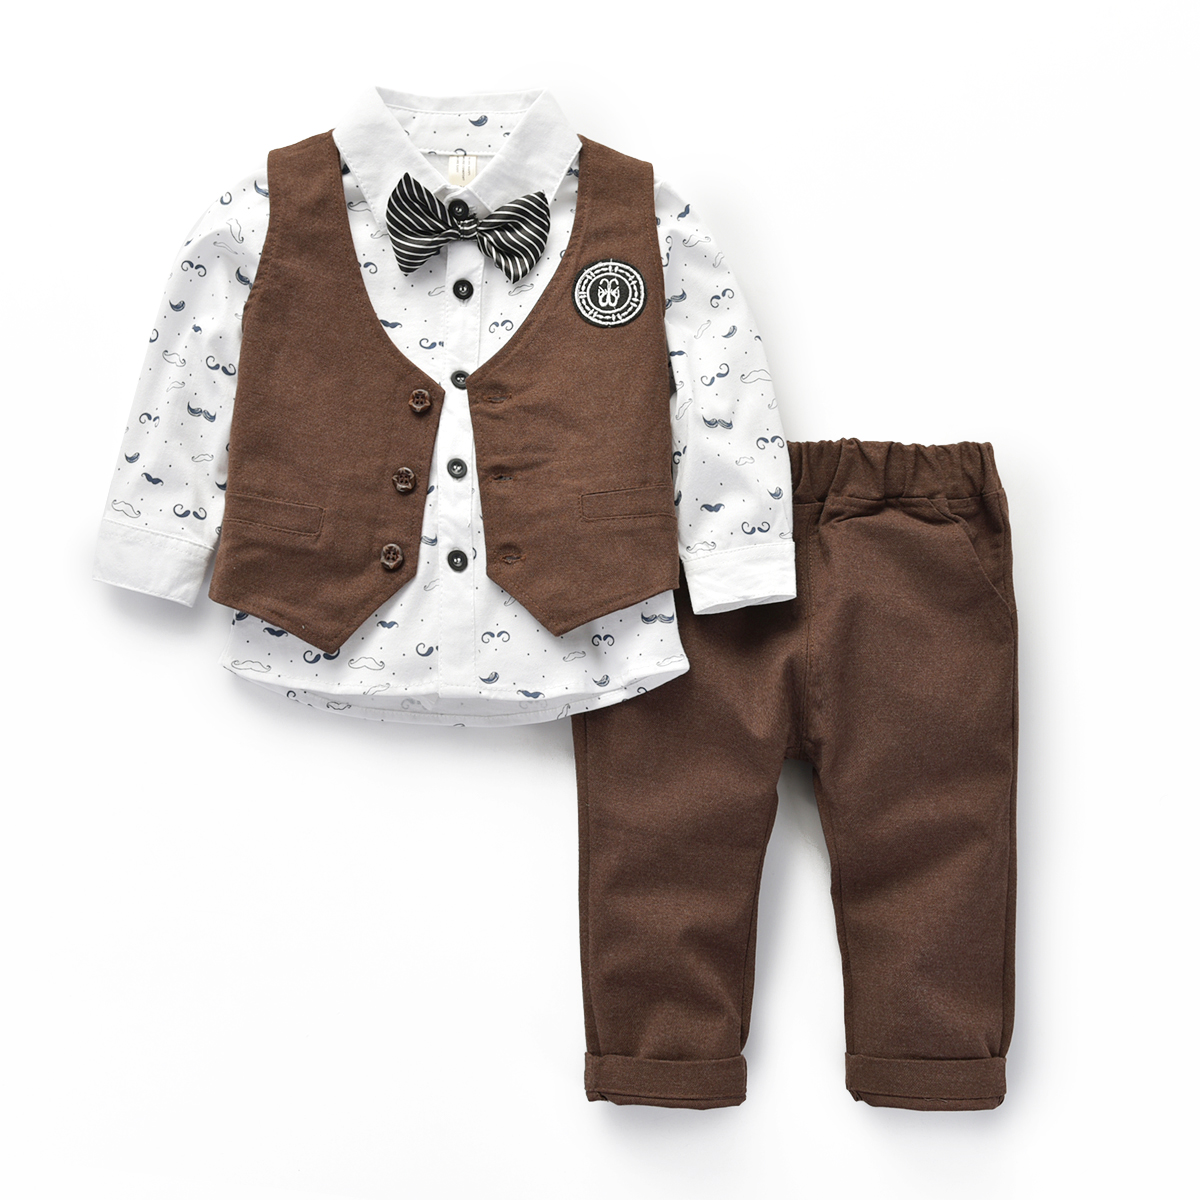 12 month newborn baby boys clothes boy suit gentleman set for baby children formal kids christening suits for boys in Clothing Sets from Mother Kids